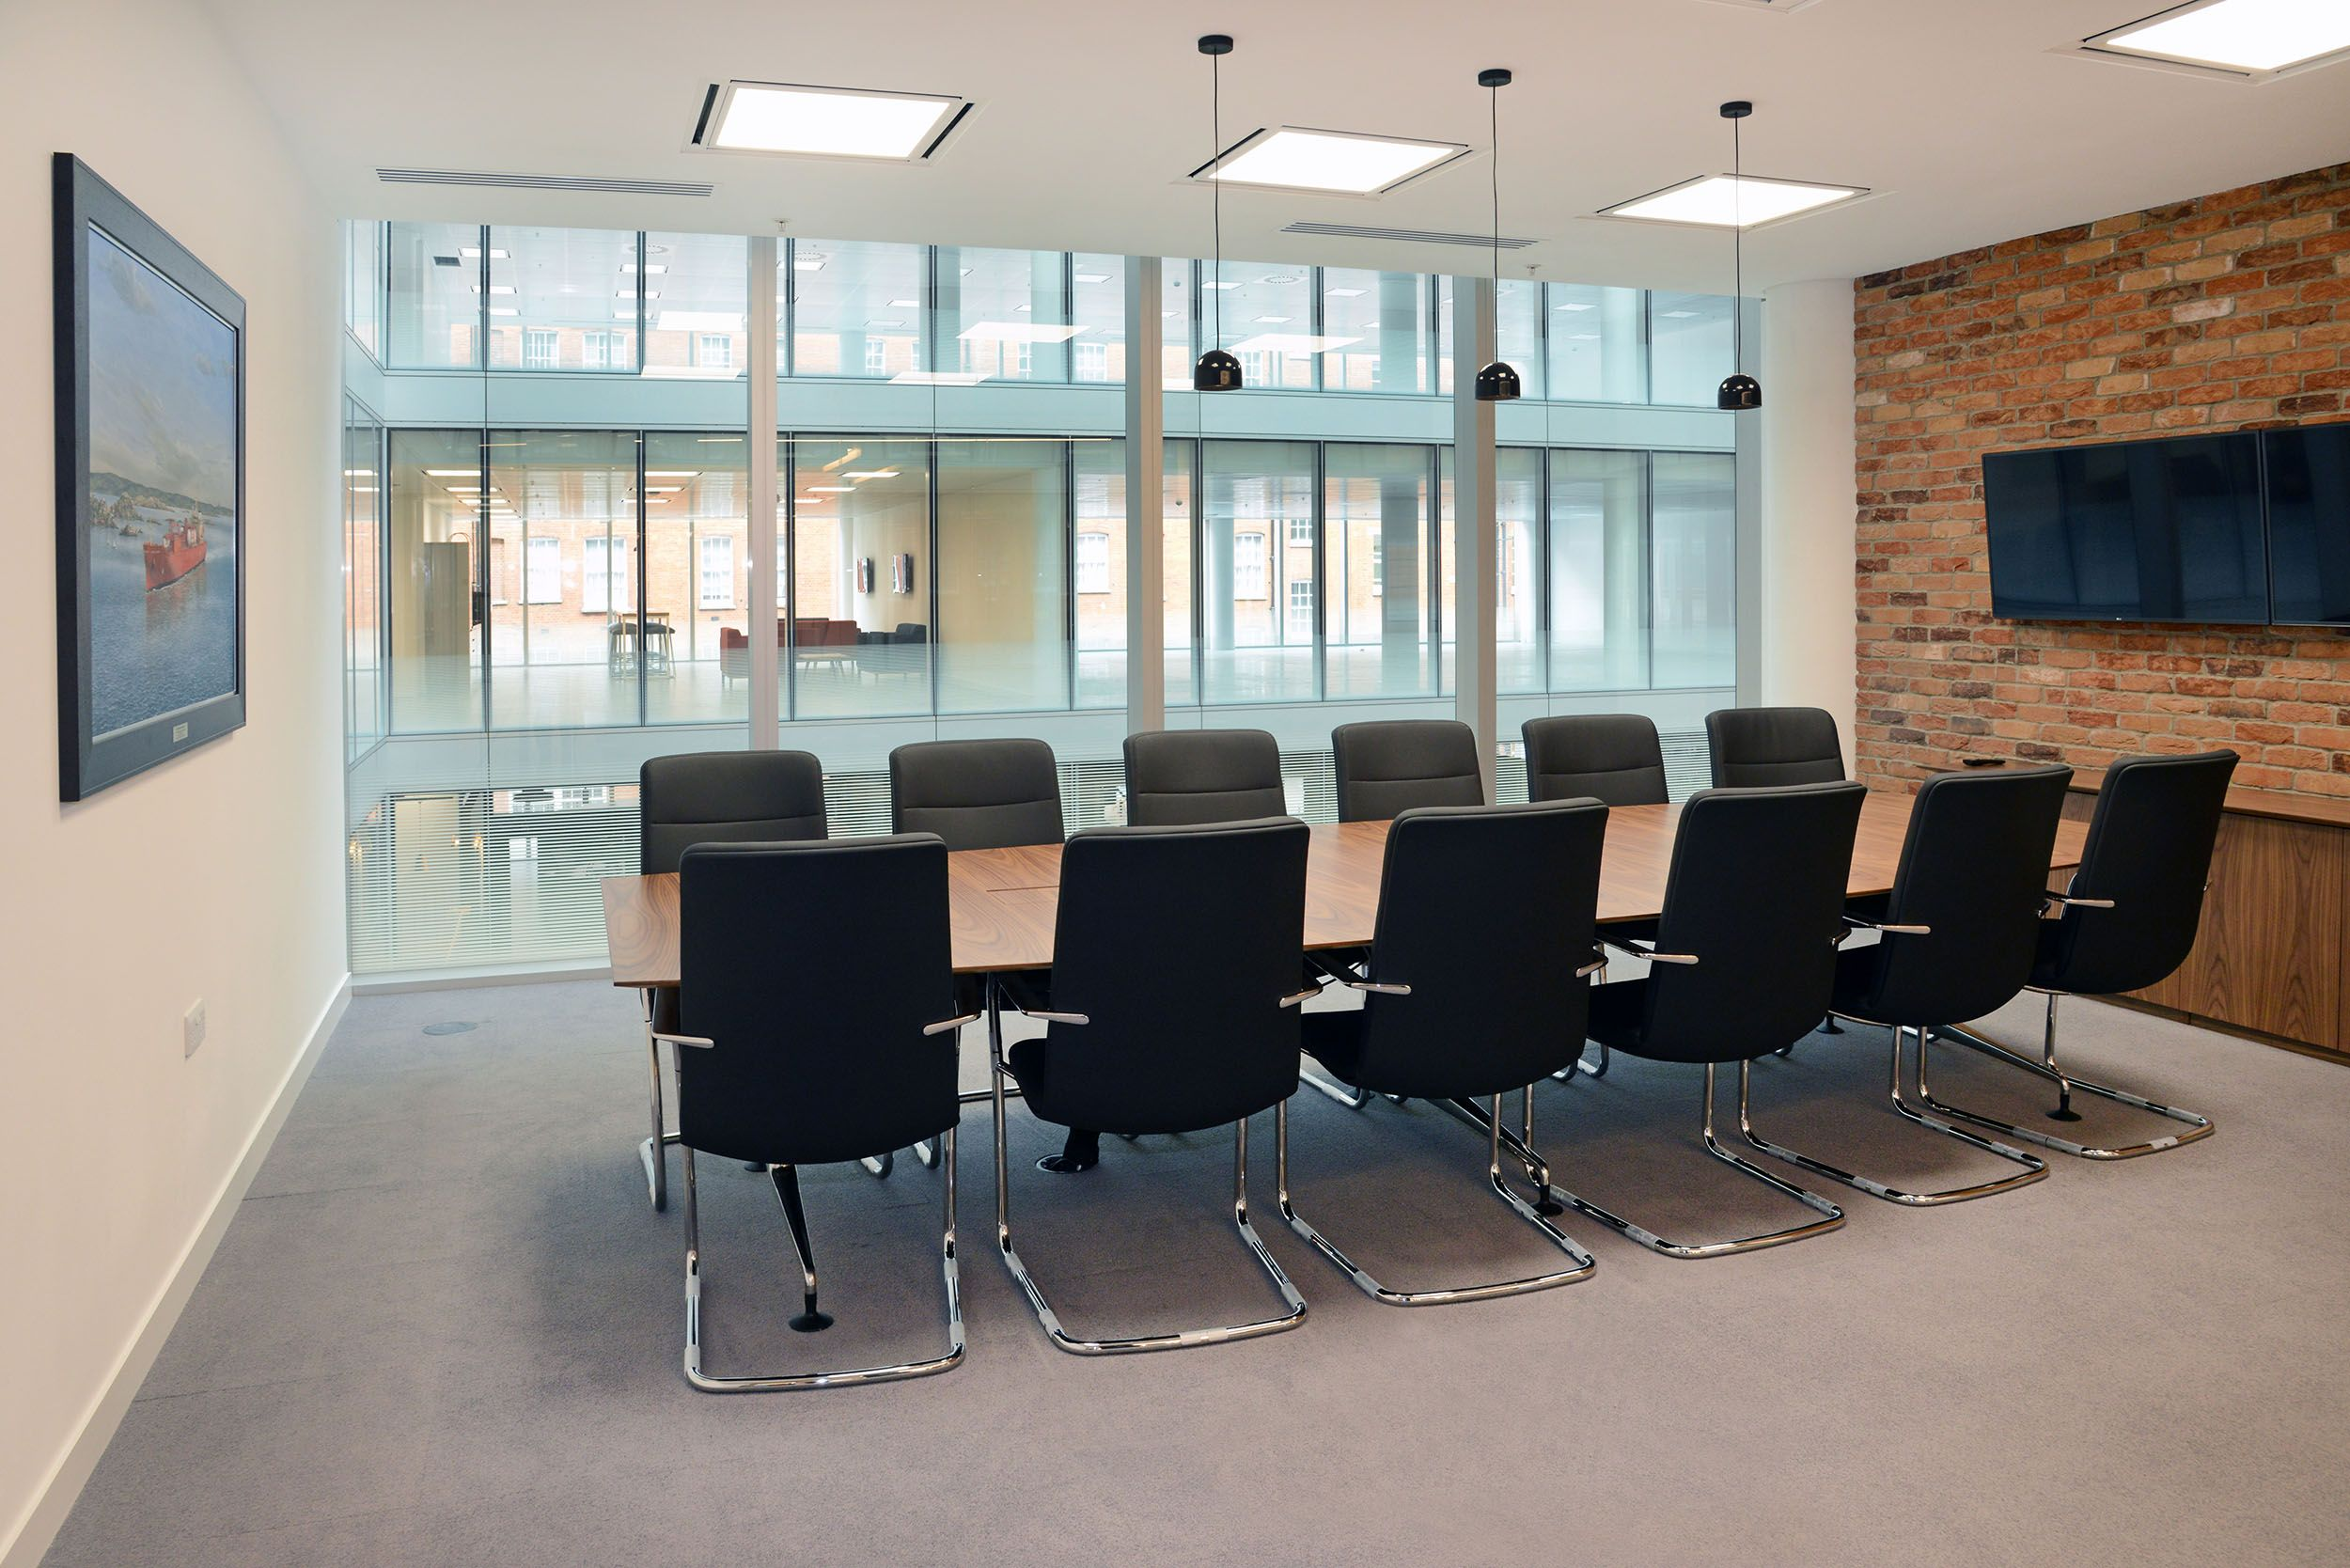 12 Person Boardroom 11 500 Sq Ft Category B Fit Out And Furniture Furniture Home Decor Home